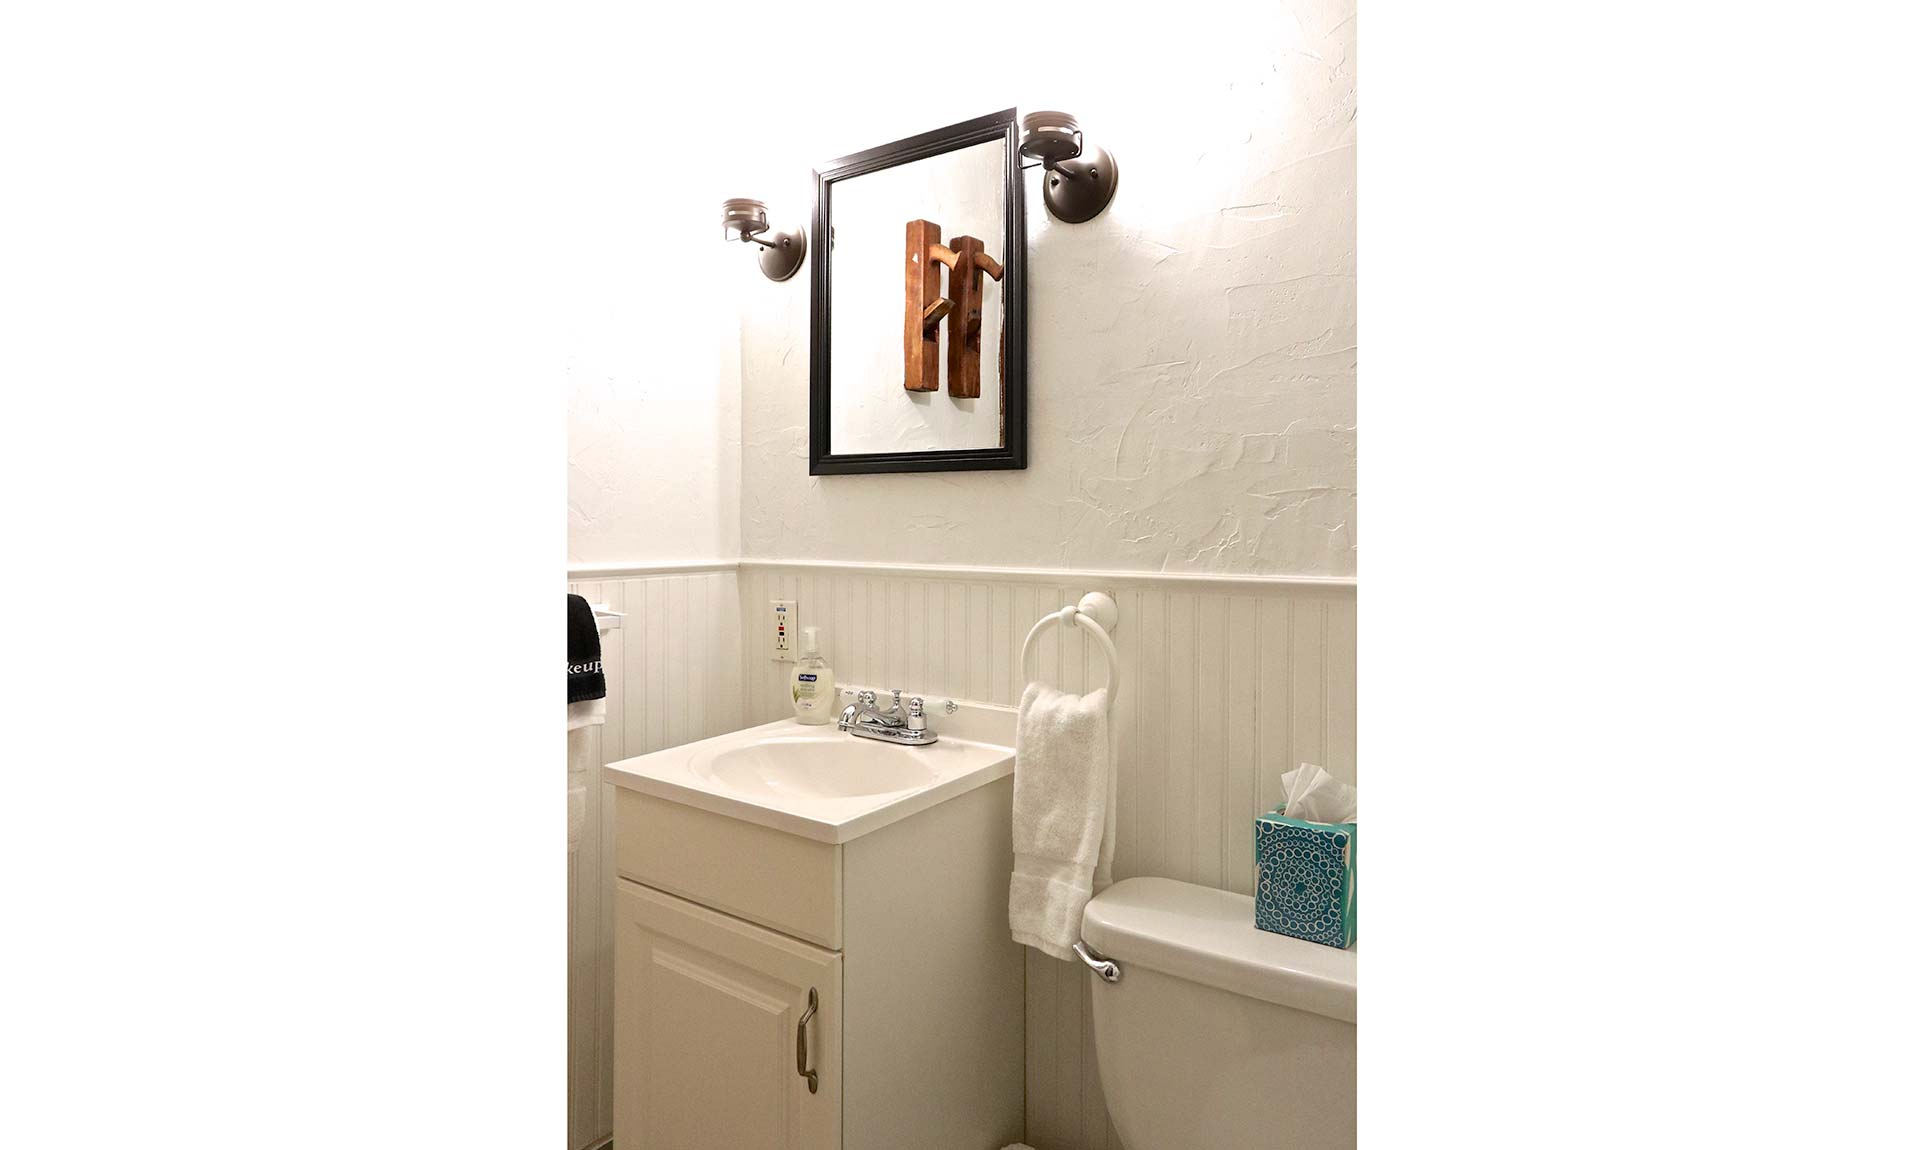 A bathroom with a small sink and mirror